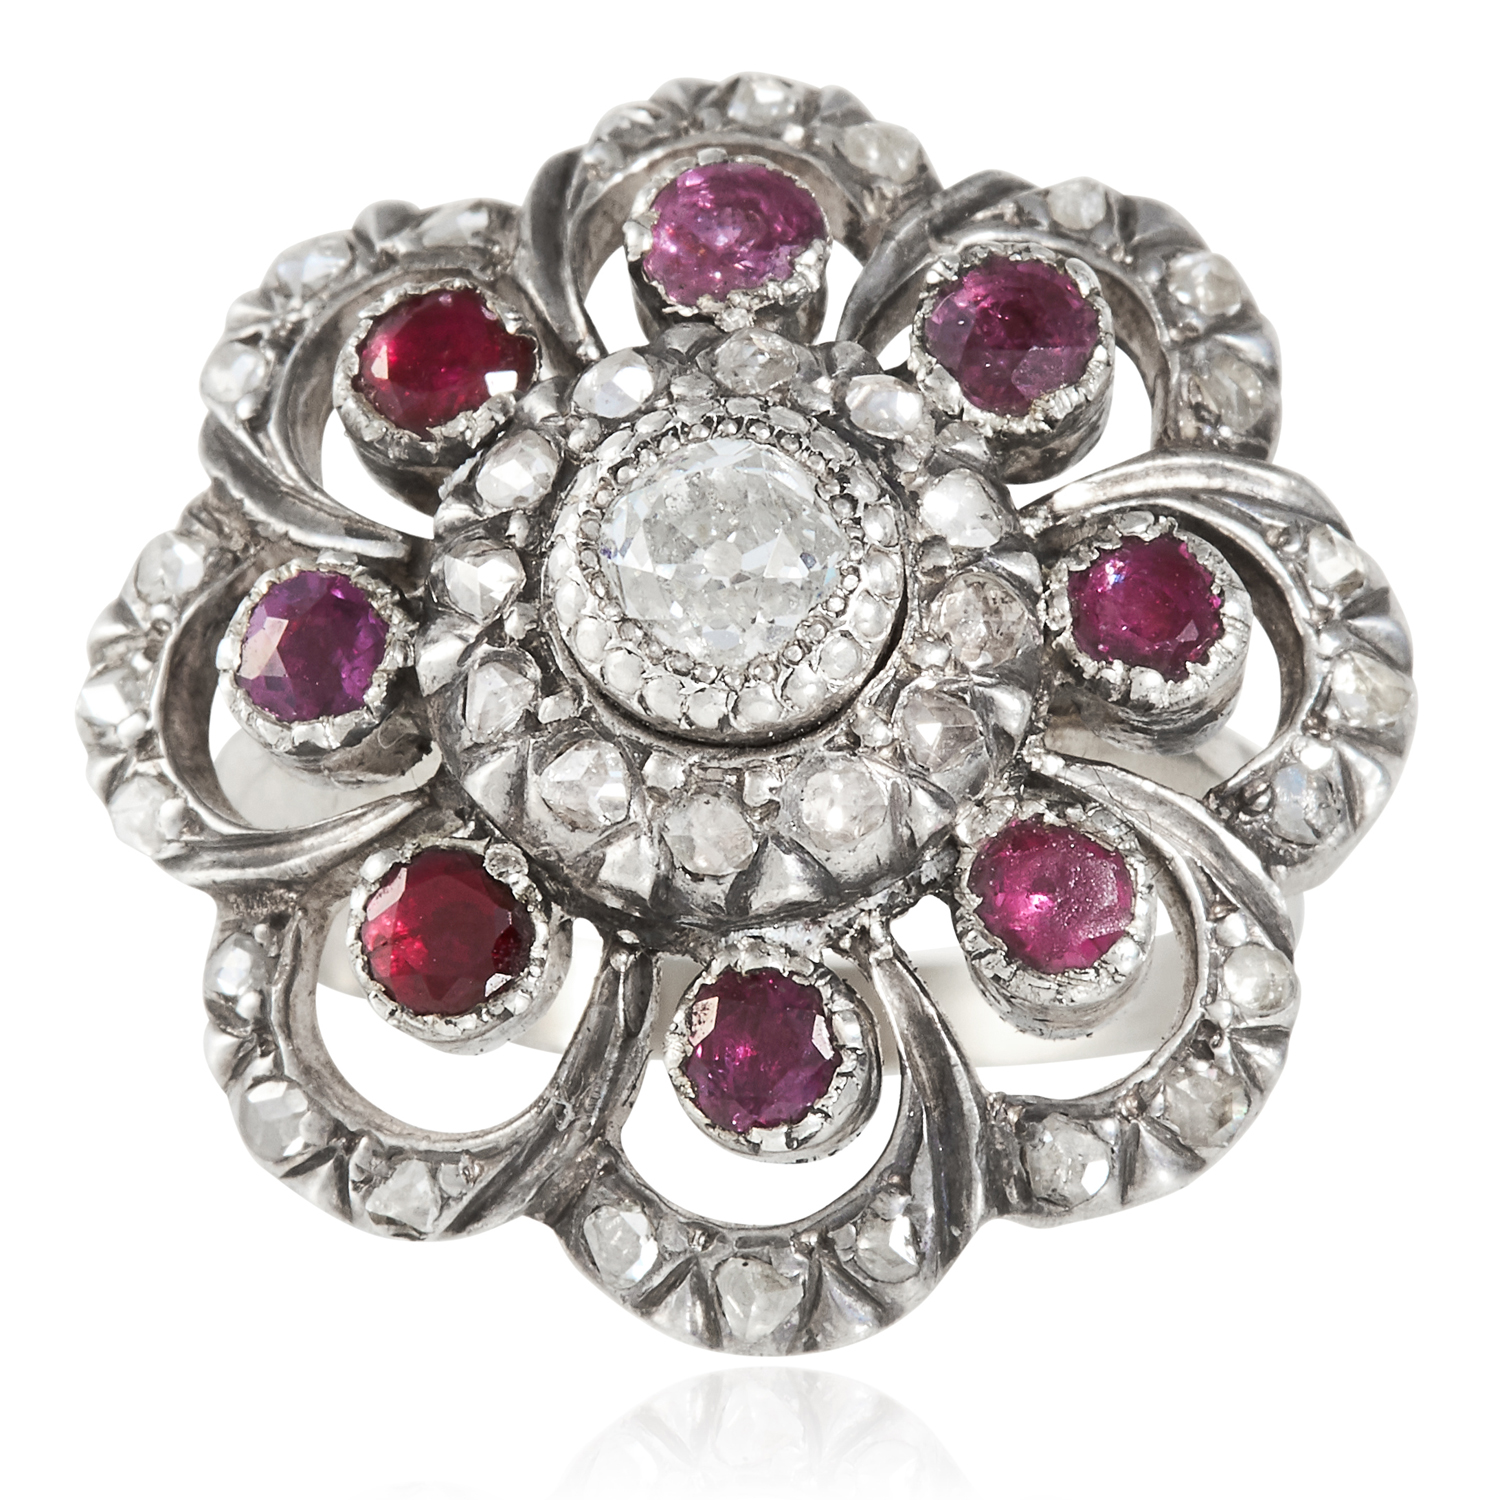 Los 47 - AN ANTIQUE DIAMOND AND RUBY RING, DUTCH 19TH CENTURY in yellow gold and silver, concentric rows of